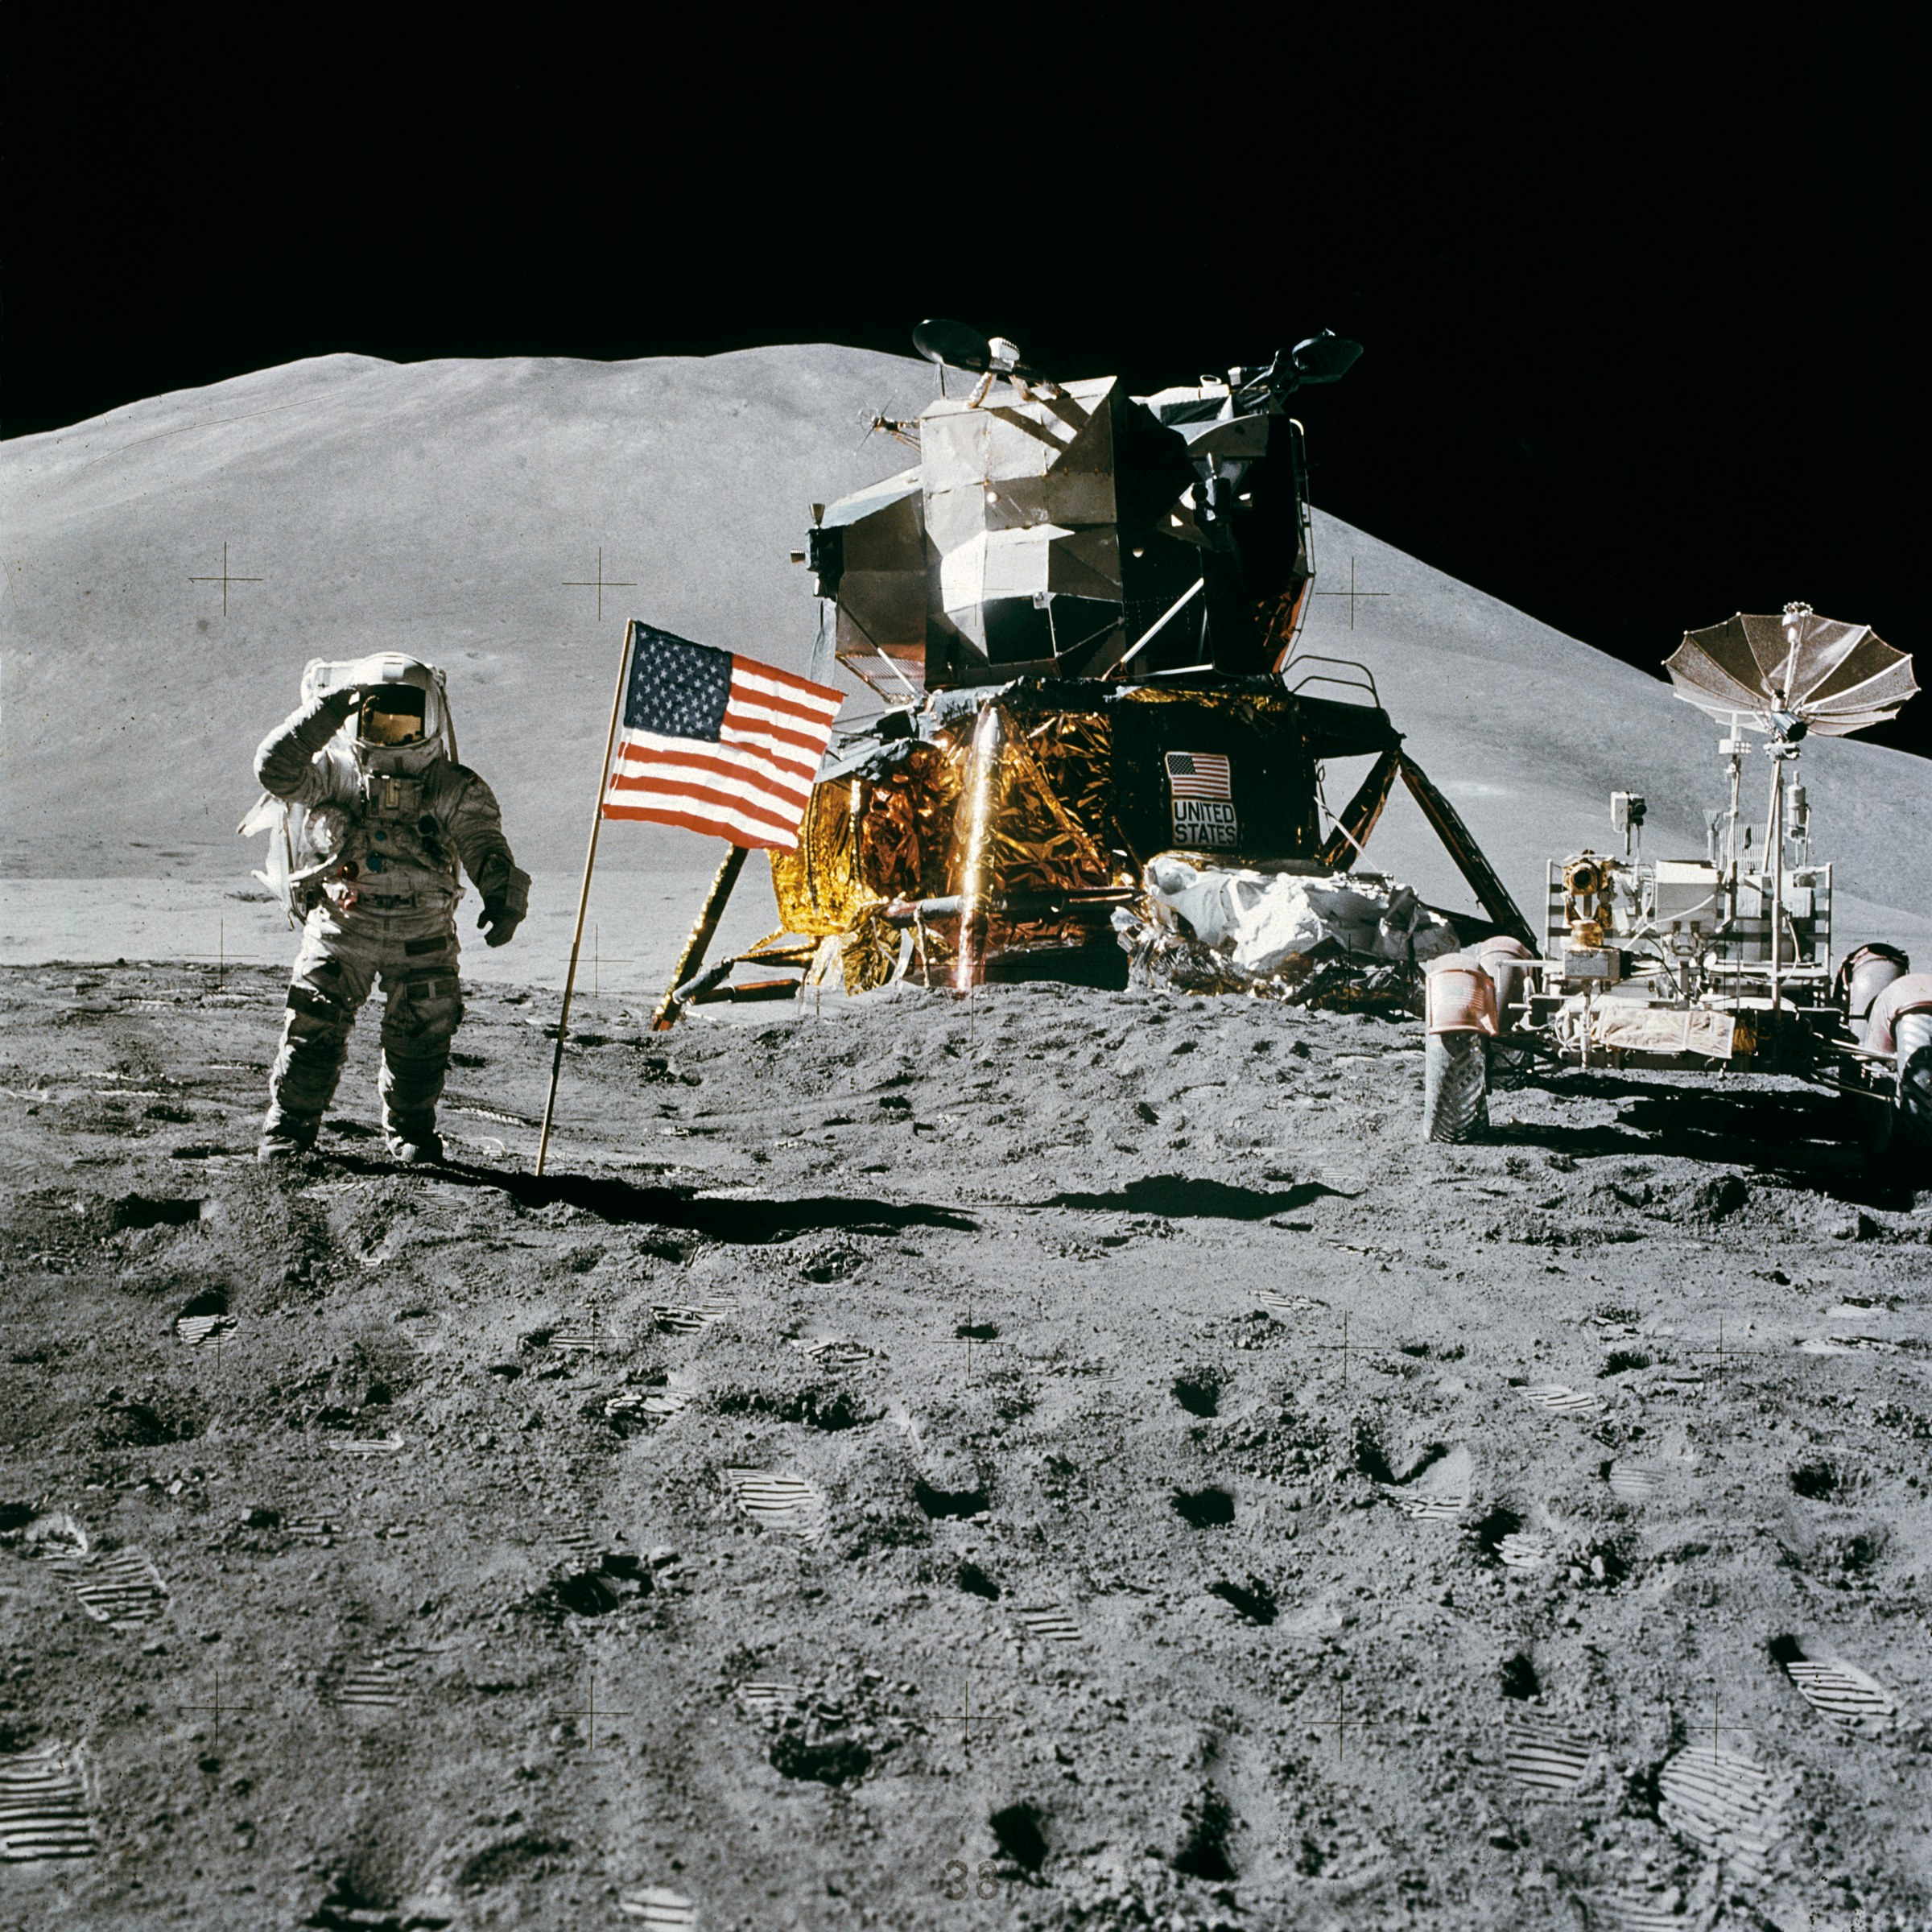 Astronaut James B. Irwin, lunar module pilot, gives a military salute while standing beside the deployed U.S. flag during the Apollo 15 lunar surface extravehicular activity (EVA) at the Hadley-Apennine landing site on the moon.